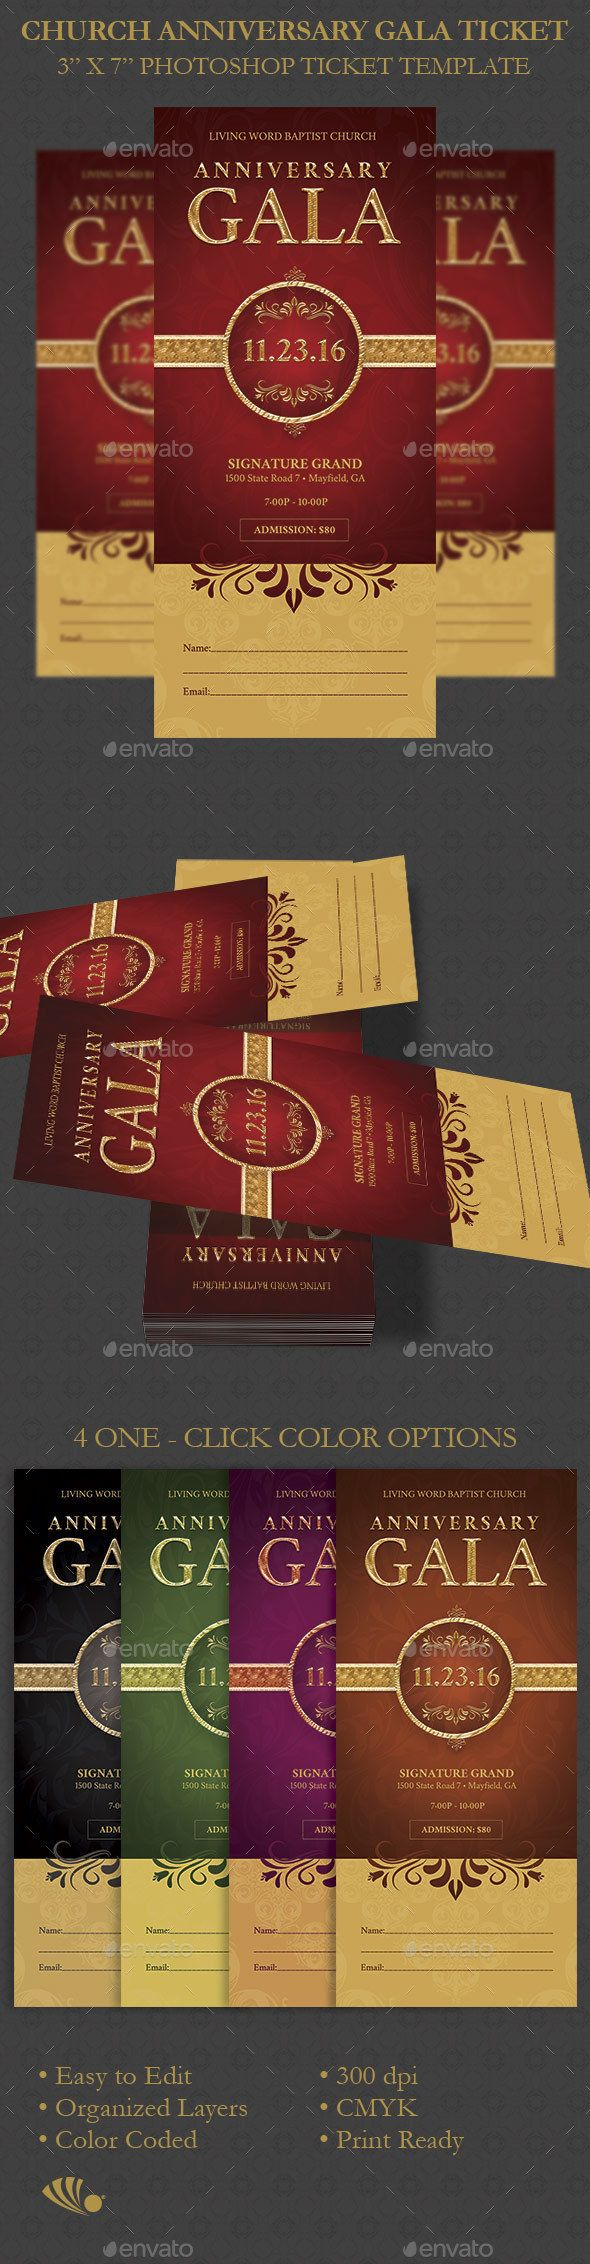 Church Anniversary Gala Ticket Template PSD Download Here Graphicriver